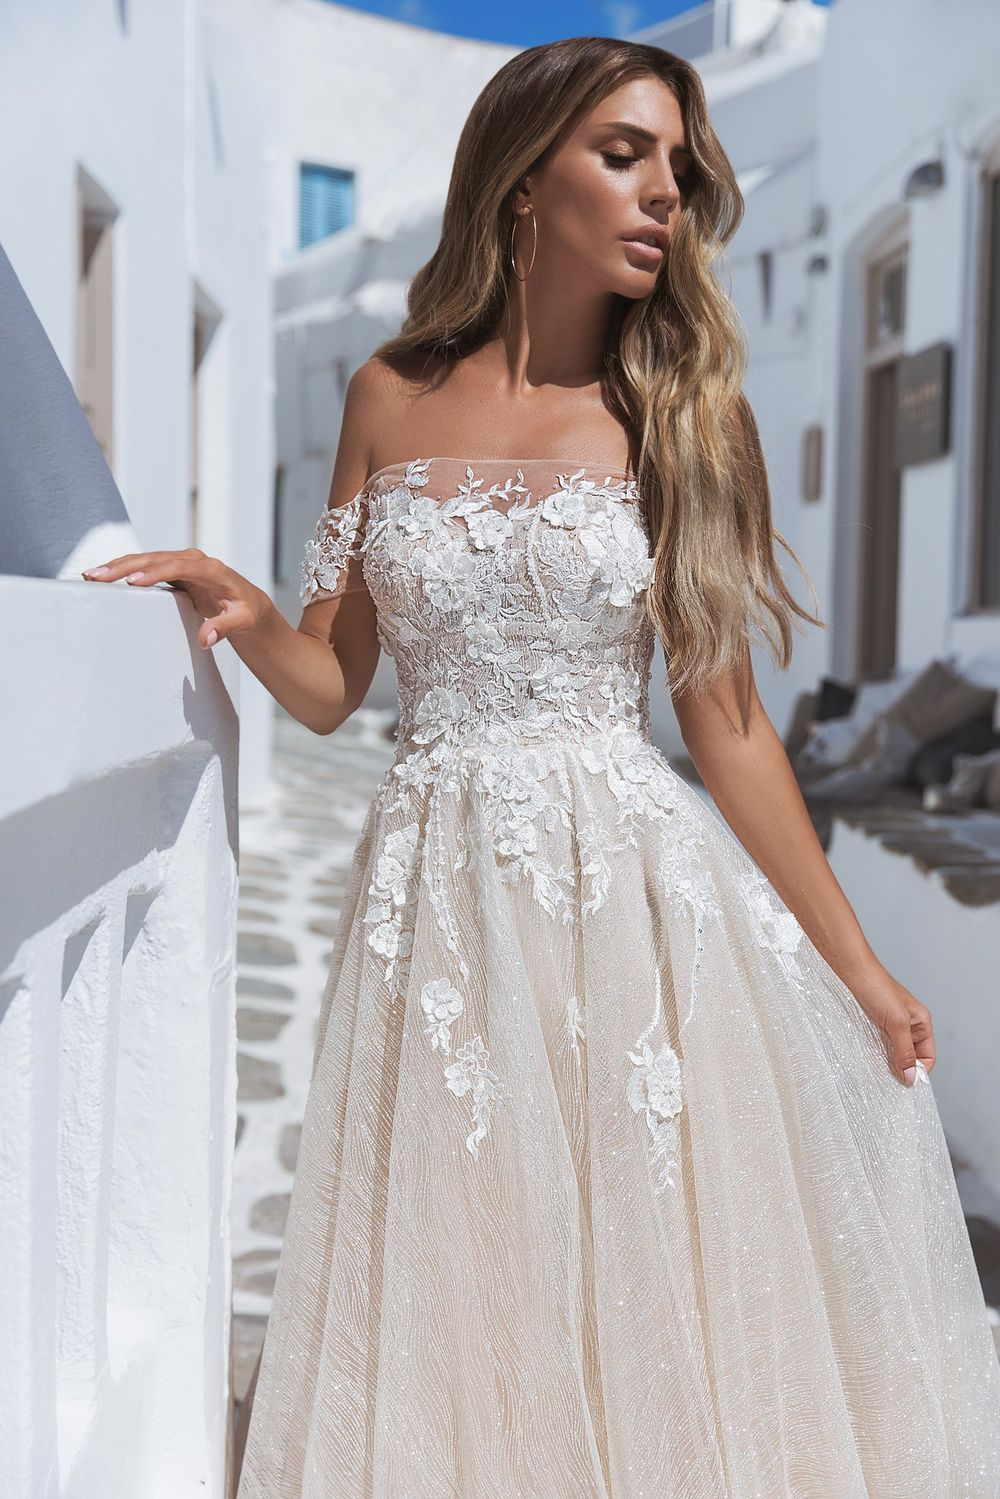 Bridal shop Luna Bianca